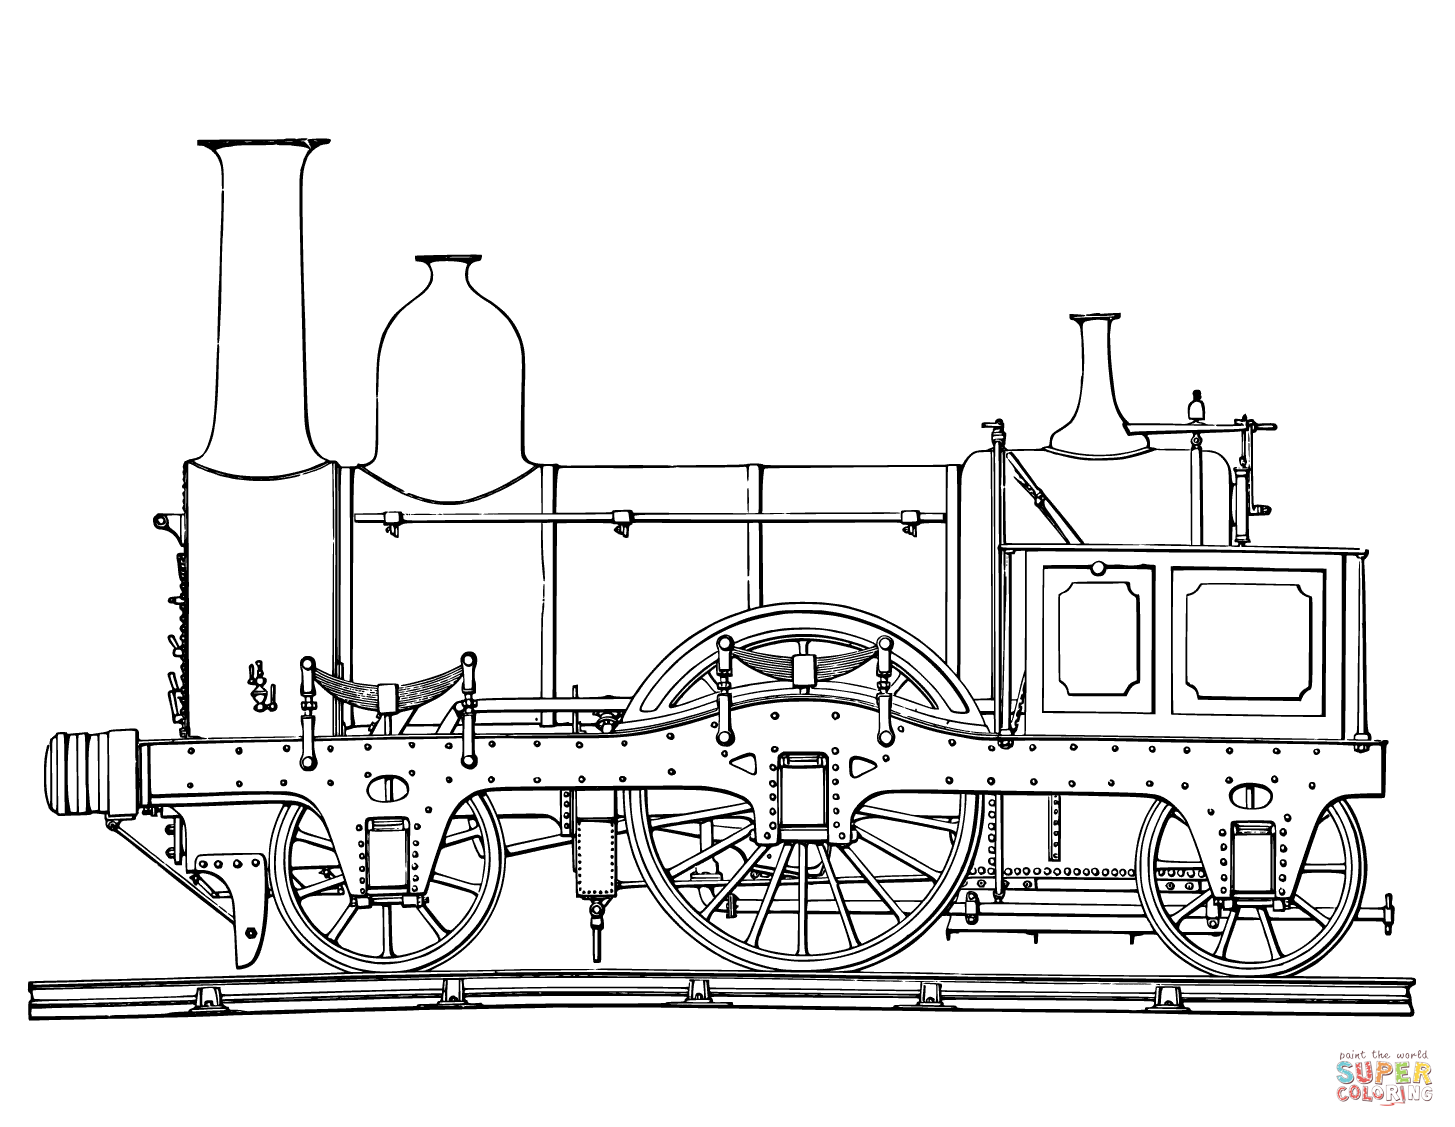 train engine coloring page steam engine drawing at getdrawings free download engine page coloring train